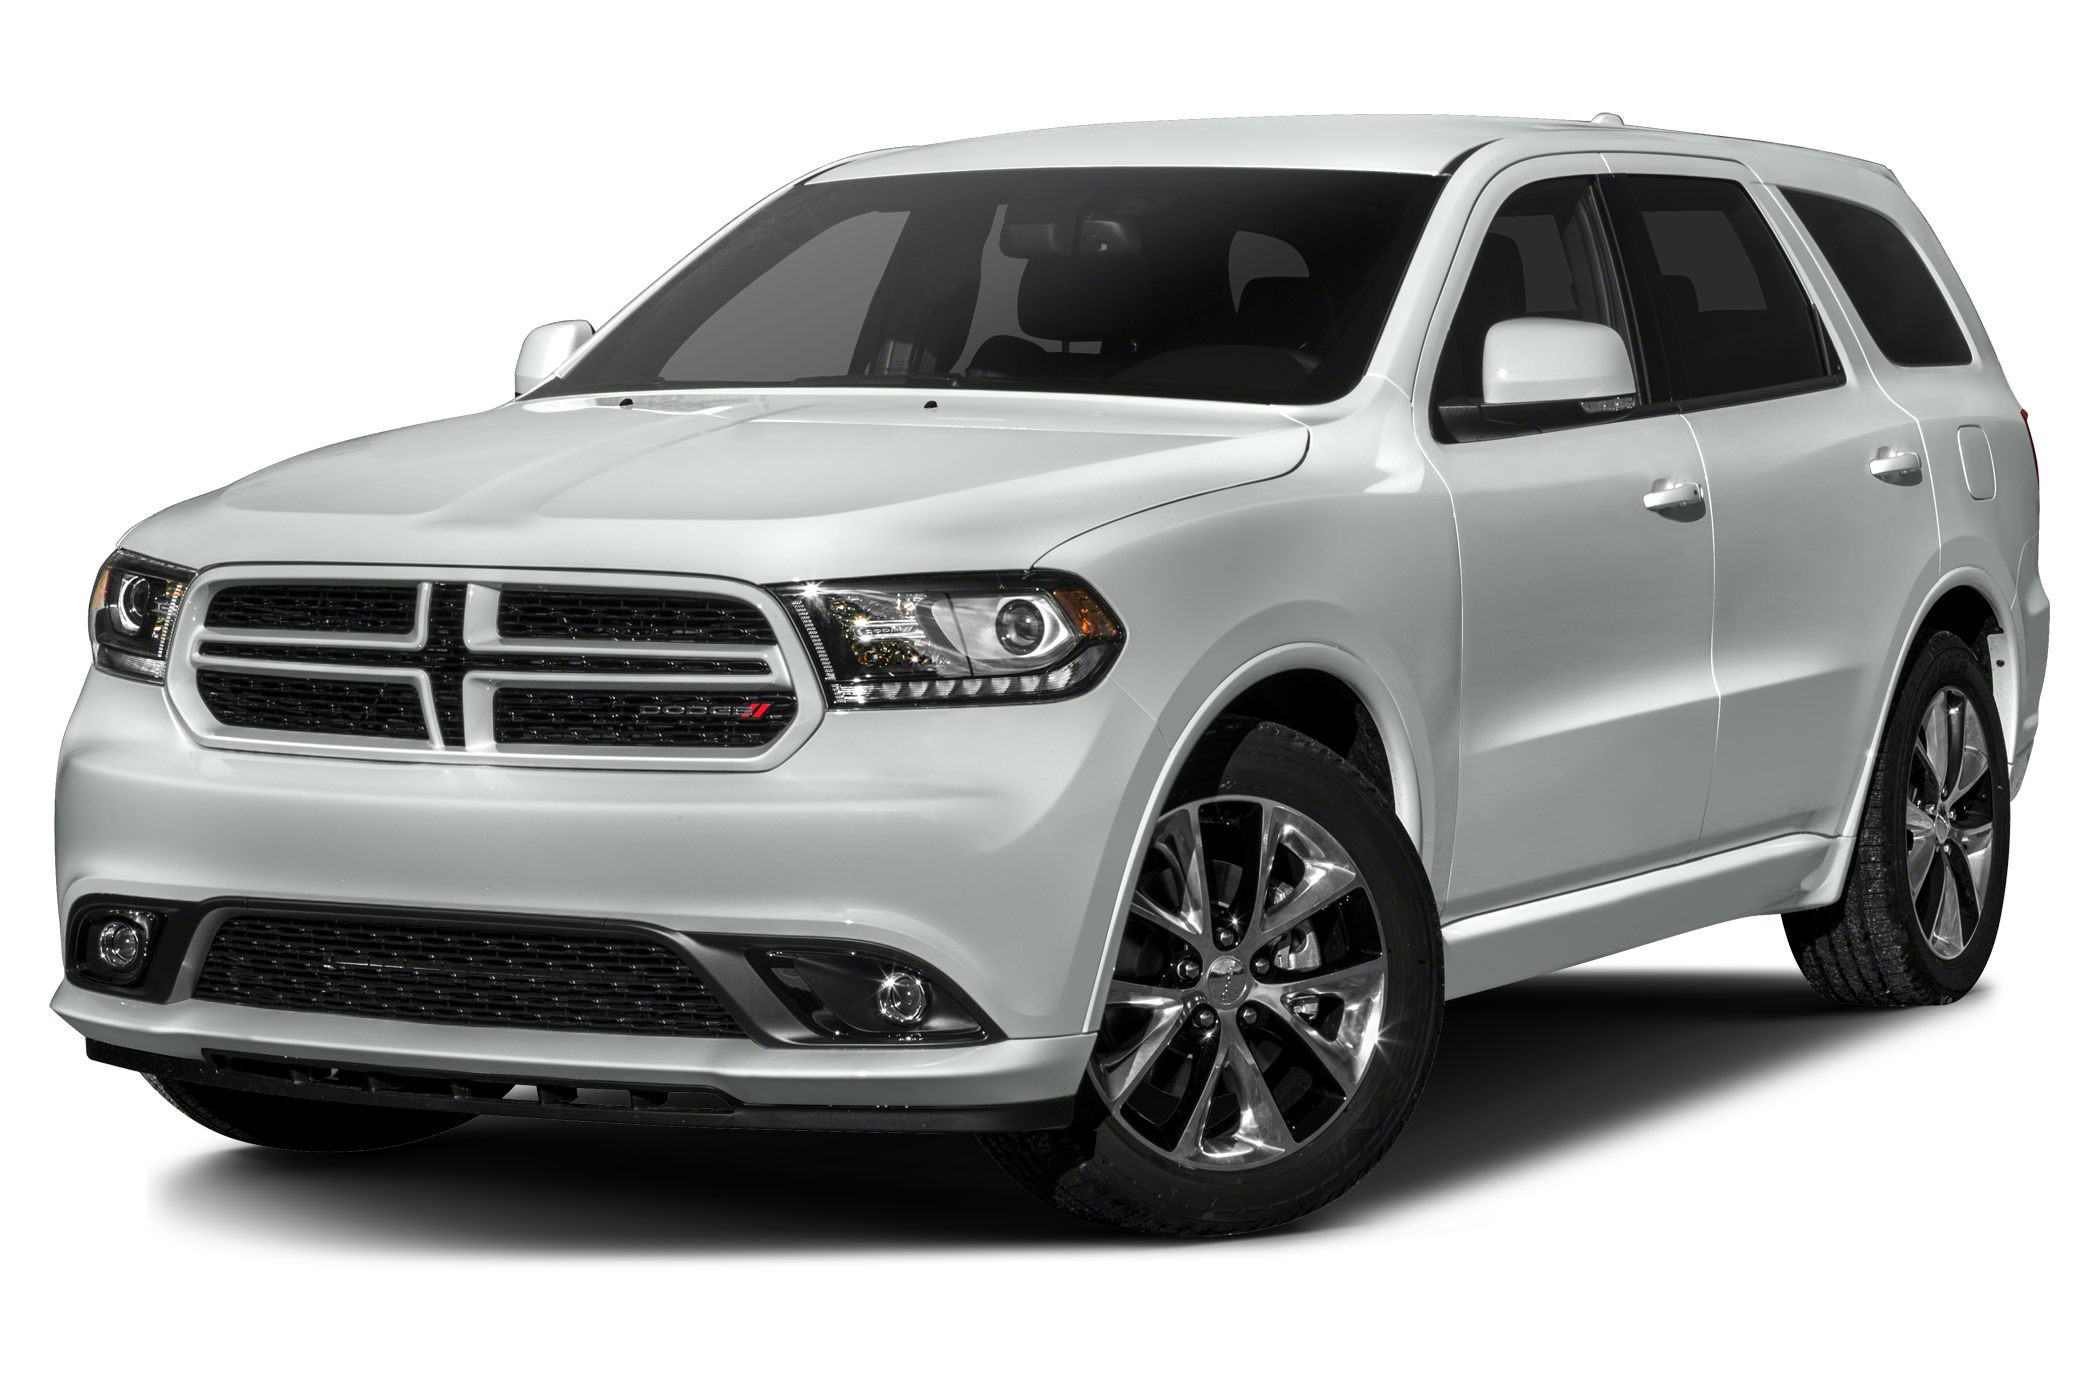 2015 Dodge Durango R/T SUV for sale in Columbia for $0 with 0 miles